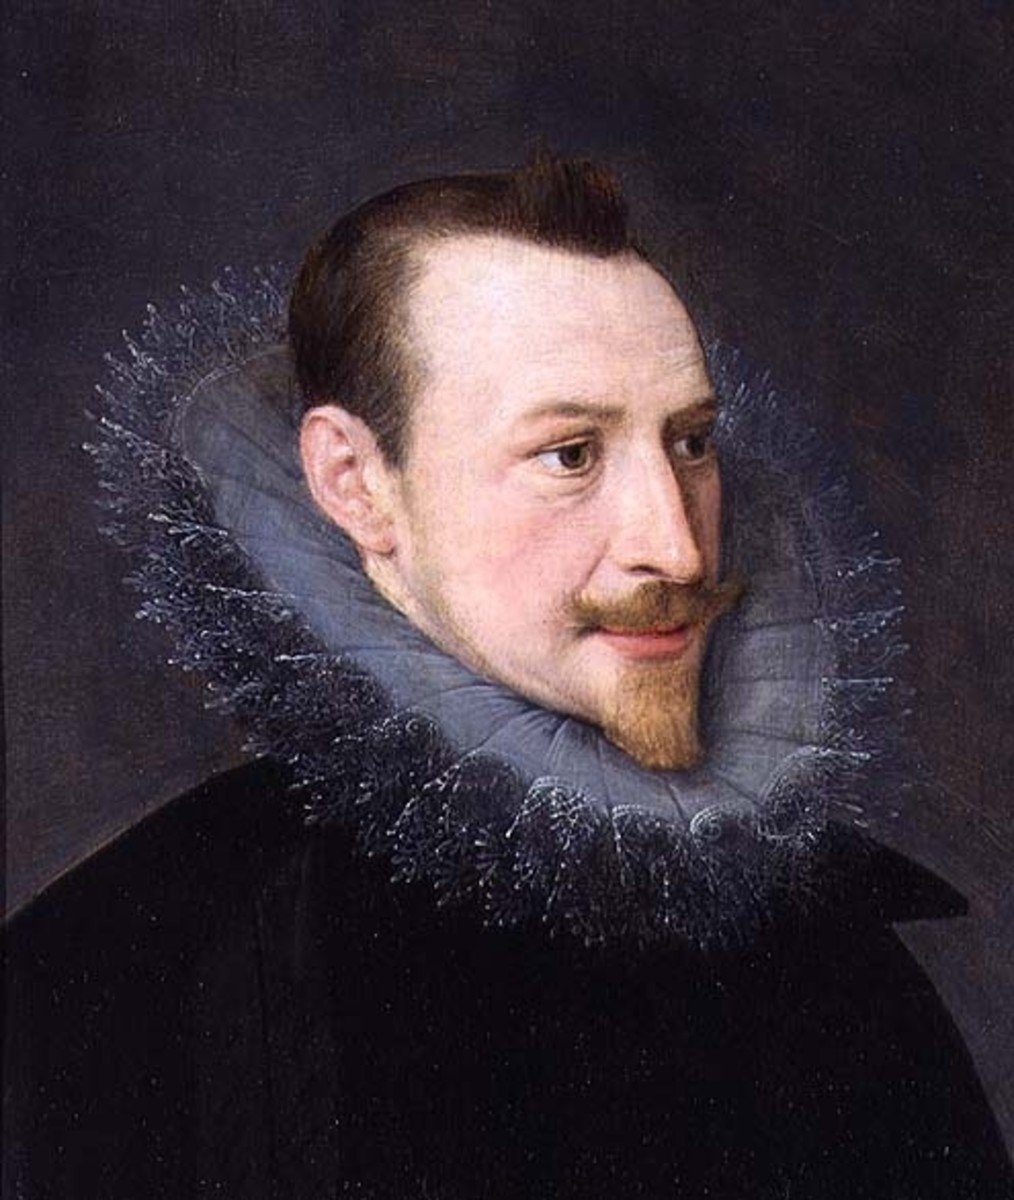 Edmund Spenser: Who composed Spenserian Sonnets for the first time in the history of English Literature